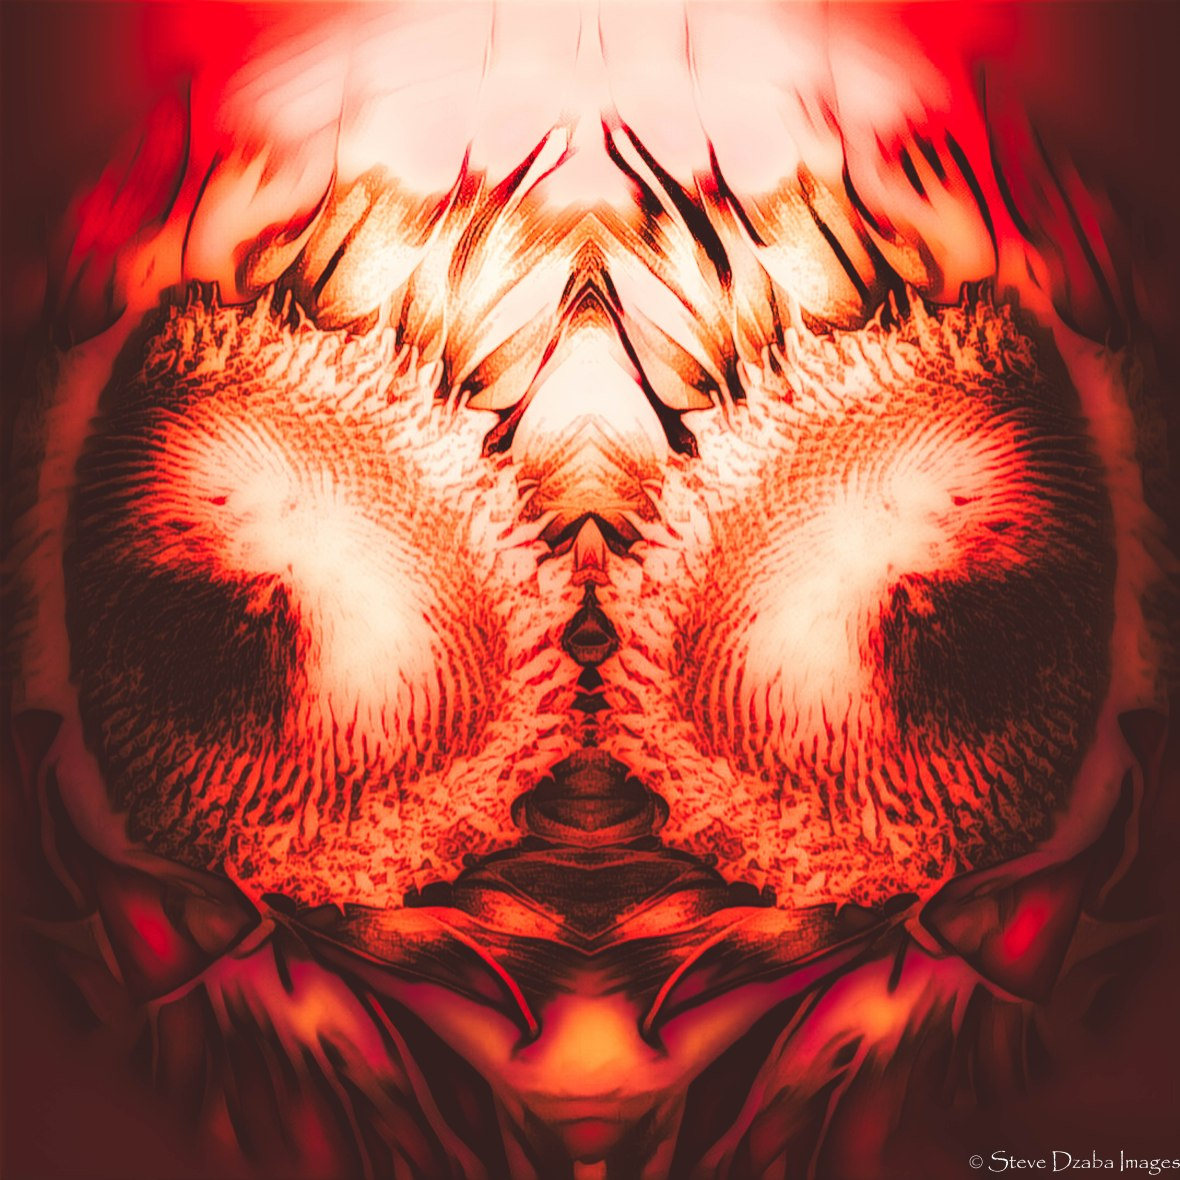 abstract-portrait-heres-lookin-at-you-flame-halo-limited-edition